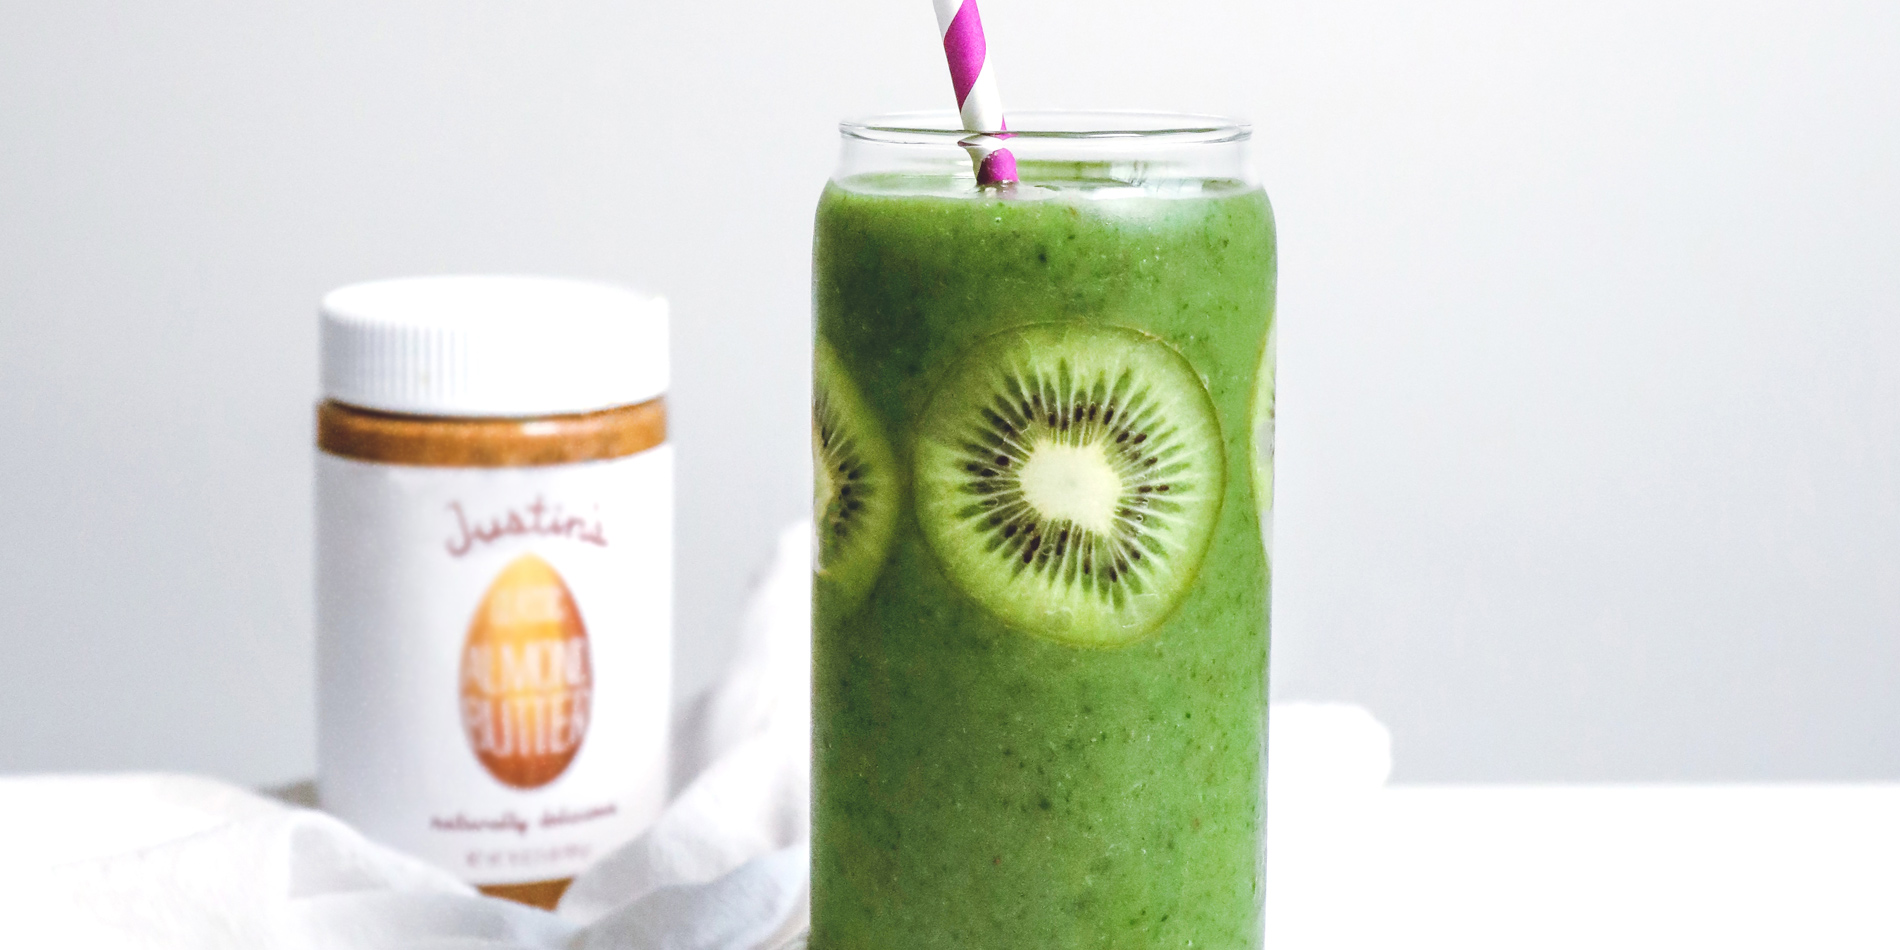 Justin's Ultimate Green Drink in a clear cup with a striped straw with kiwis on a white background